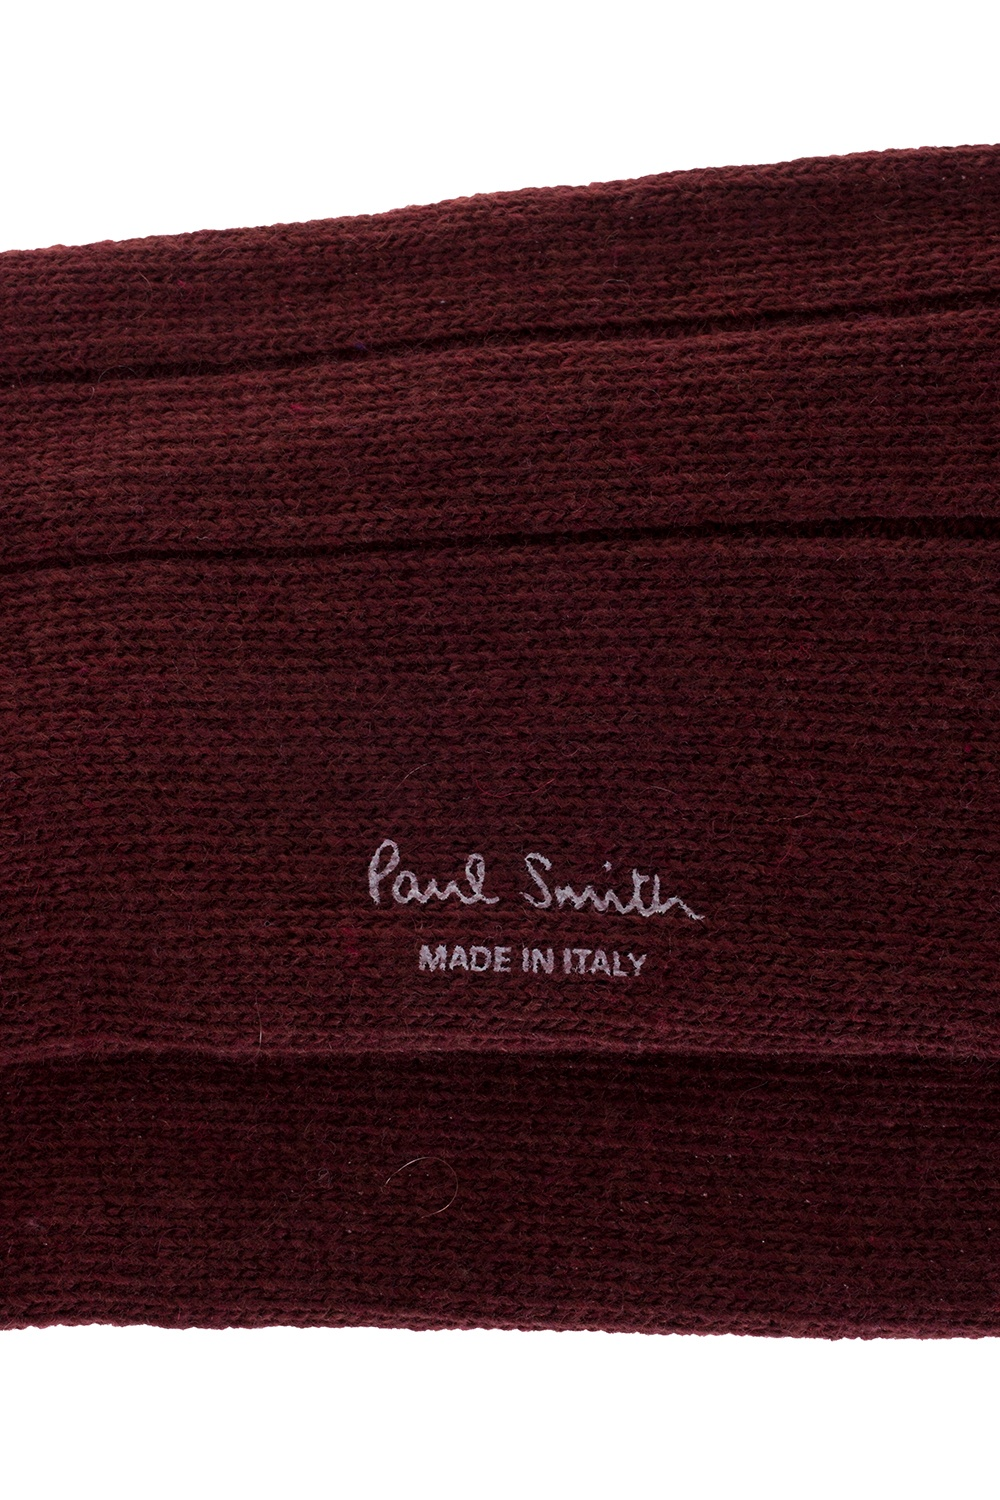 Paul Smith Wool Socks